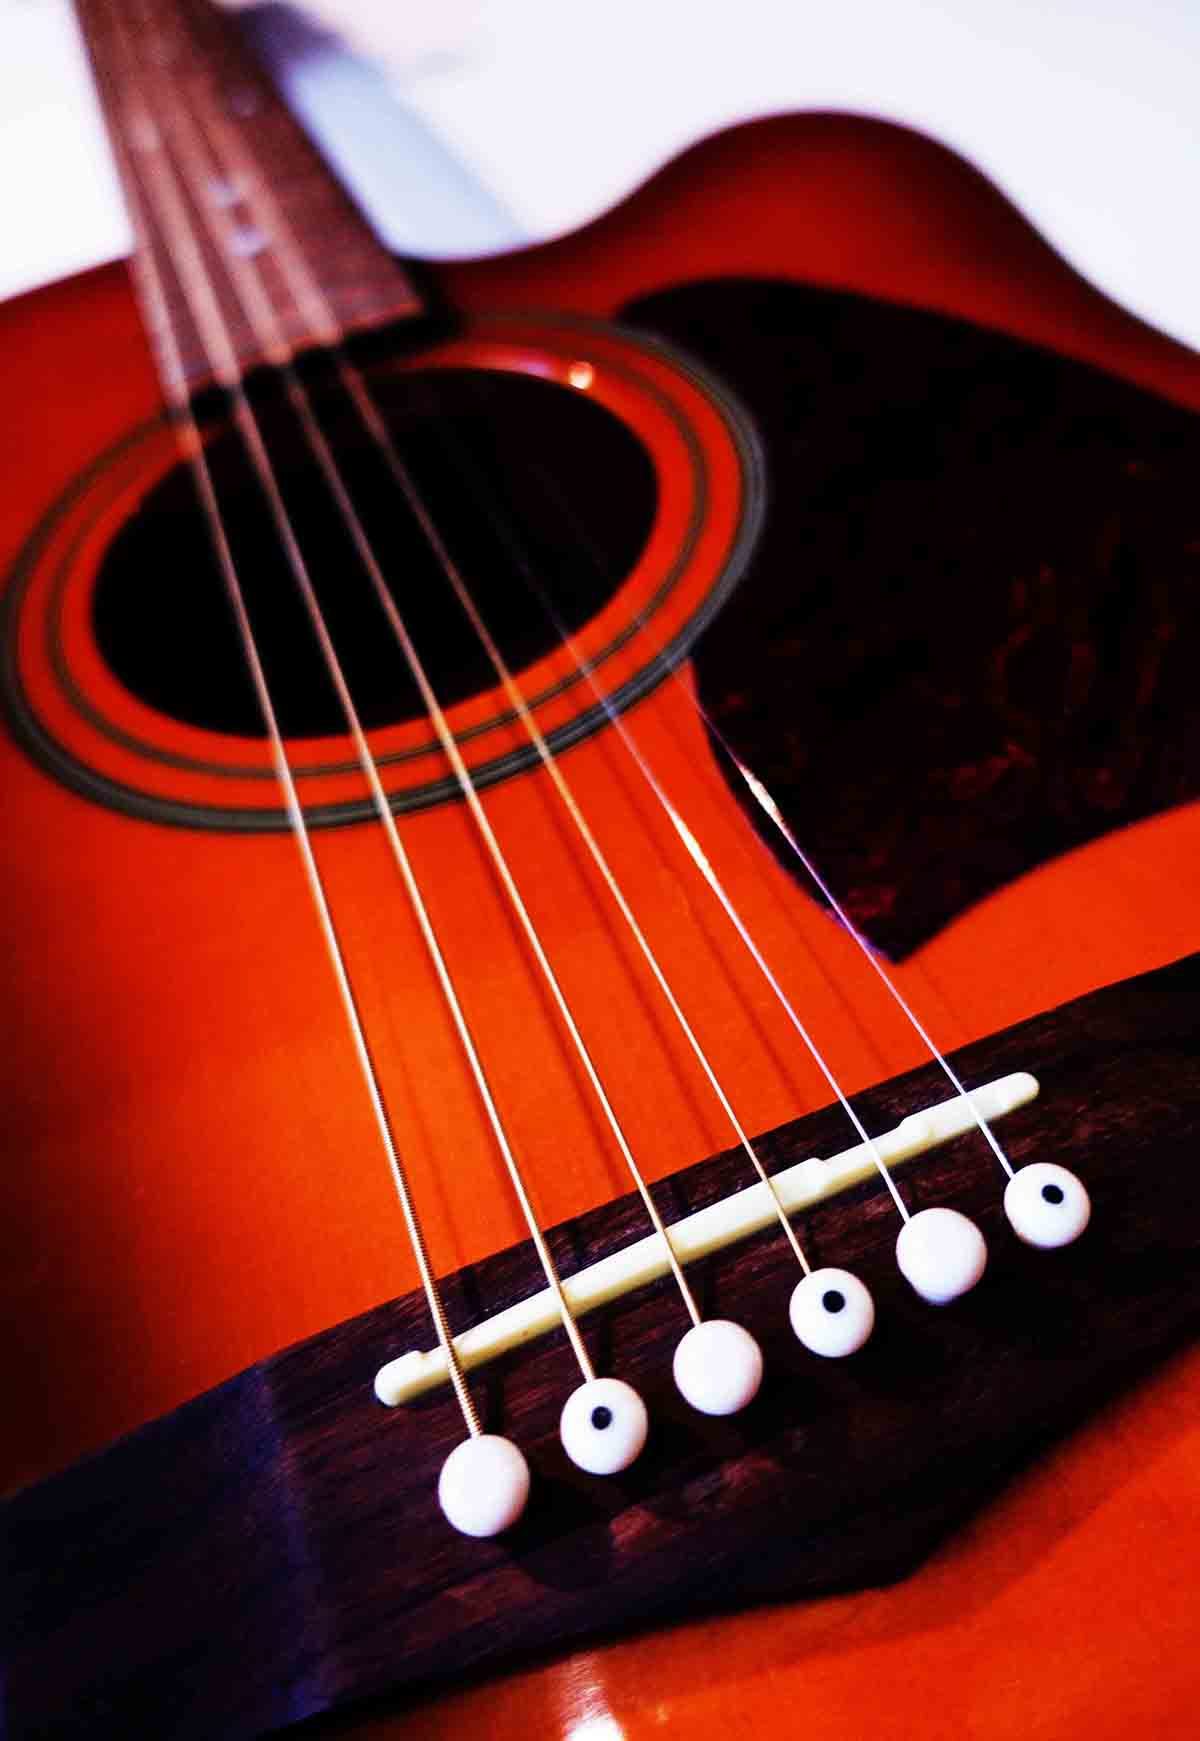 Free stock photo Close-up of red and black guitar